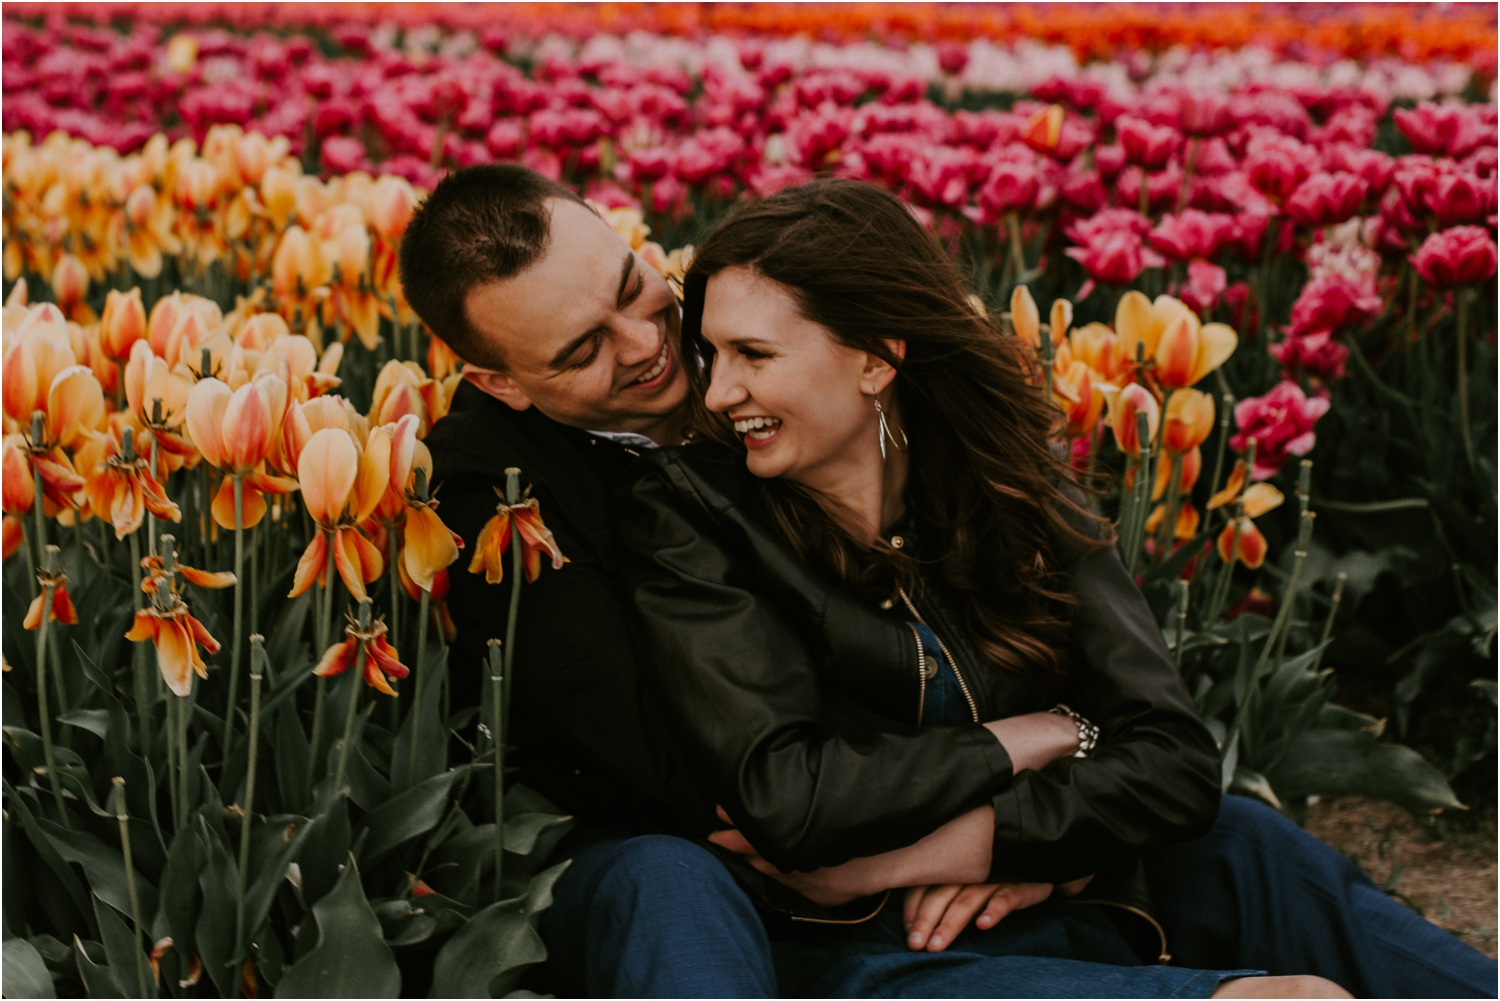 Abbotsford Tulip Festival,Courtney Jess Photography,East Kootenay Photographer,Fernie Photographer, Fernie Wedding Photographer, Kimberley BC Photographer, Kimberley BC Weddings, Tulip Engagement Session,